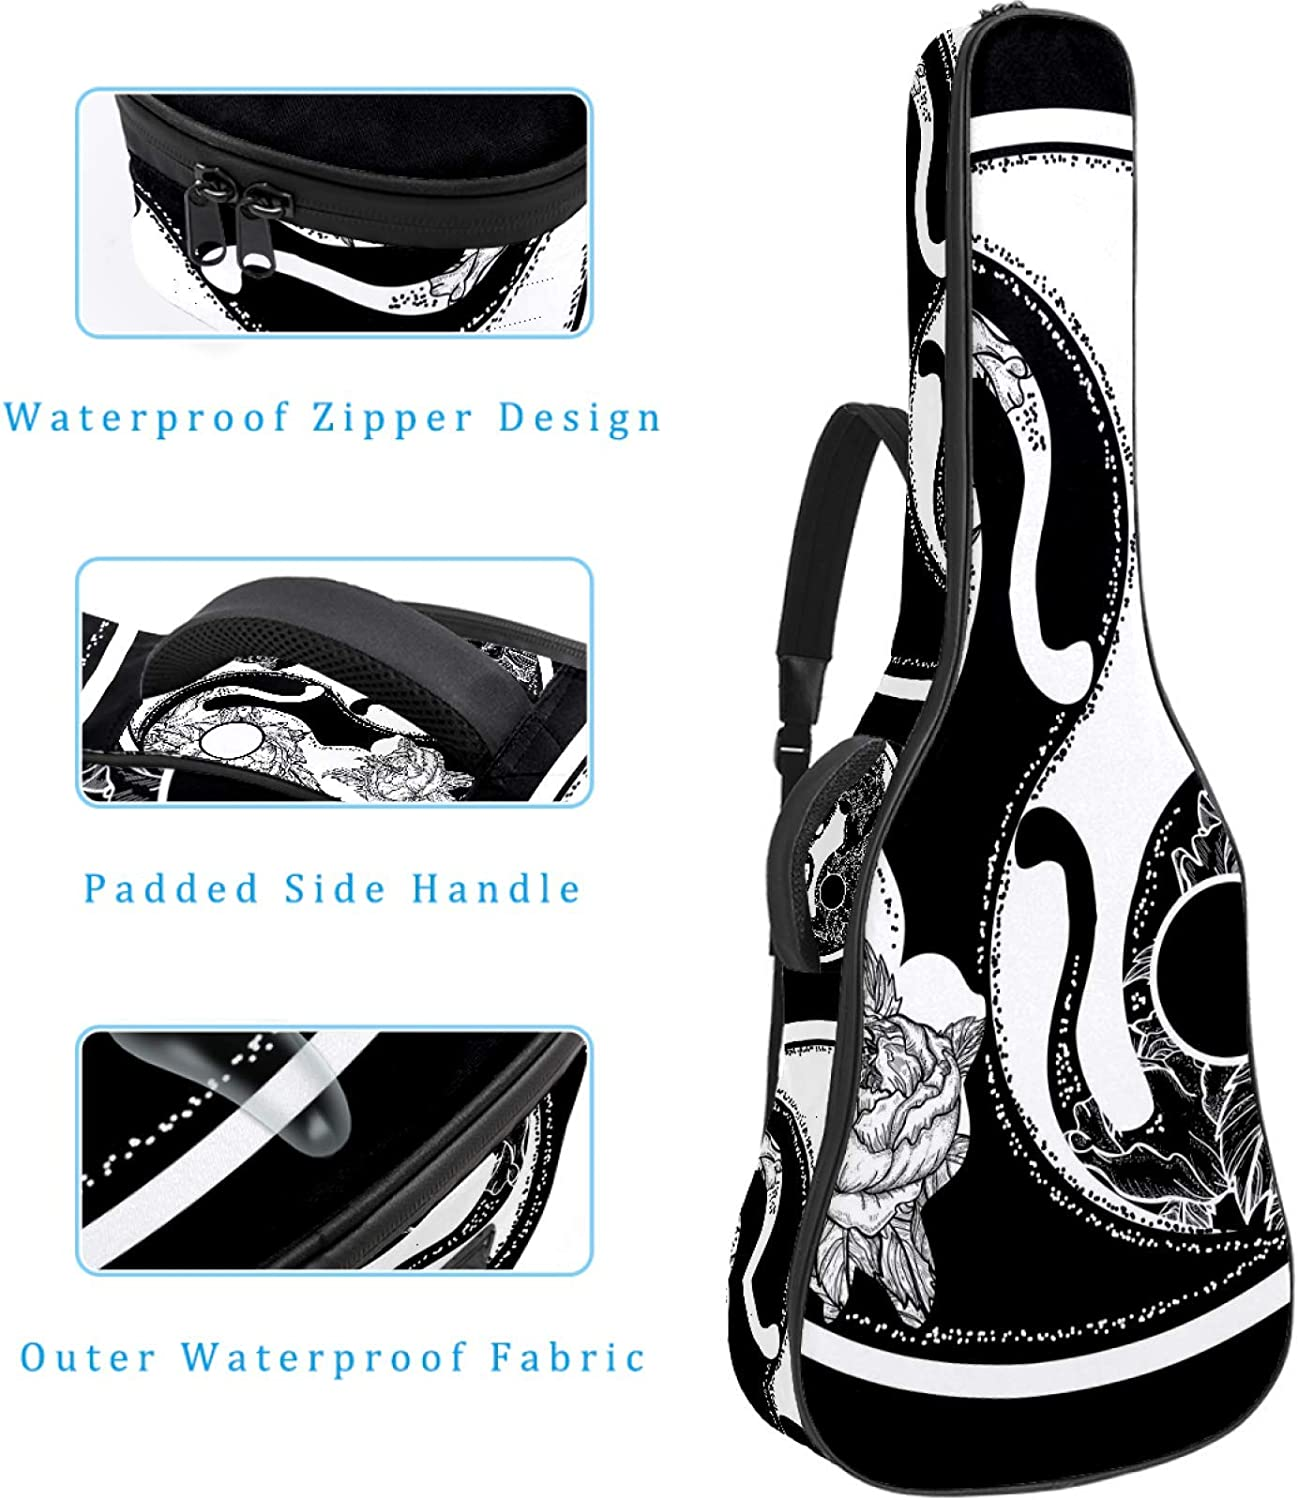 Guitar Bag Waterproof Oxford cloth 2 Pockets for 40 41 42 Inches Acoustic Classical Guitar,Cute Pig